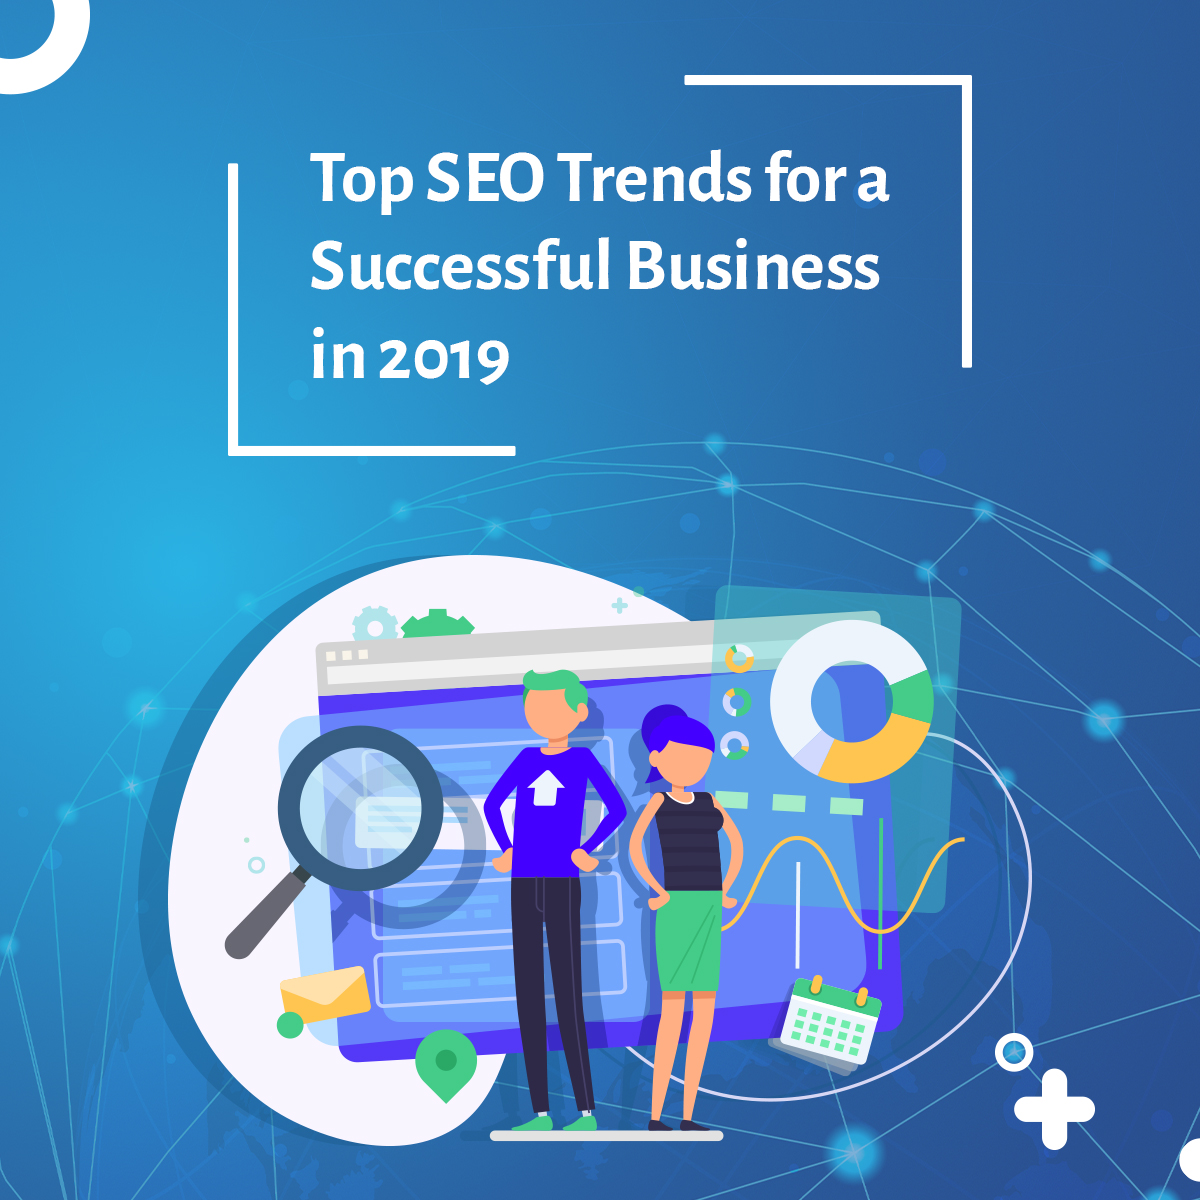 Top SEO Trends for a Successful Business in 2019